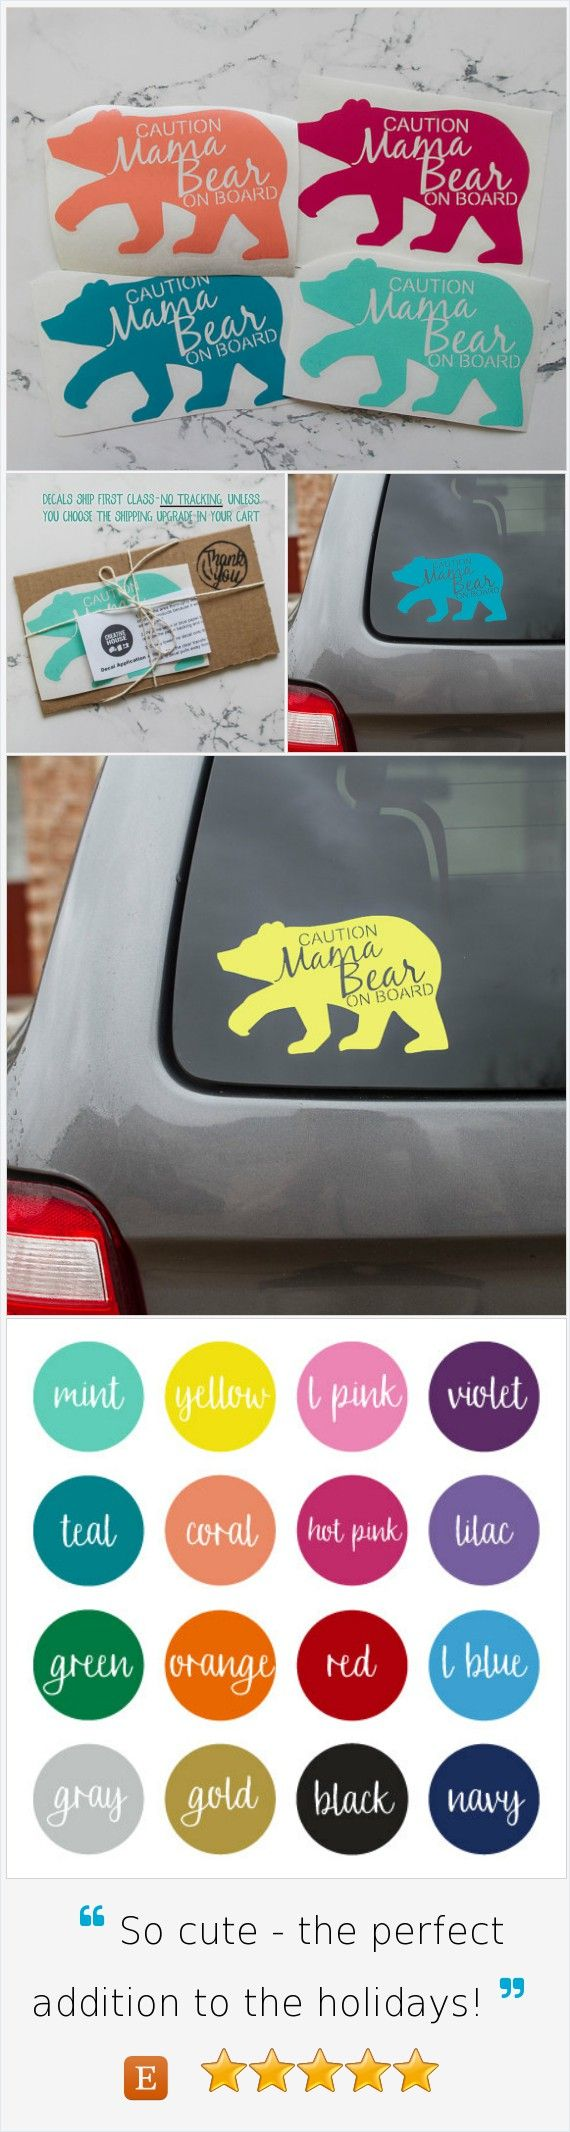 Unique Vinyl Car Decals Ideas On Pinterest Decals For Cars - How to make vinyl decals using cricut